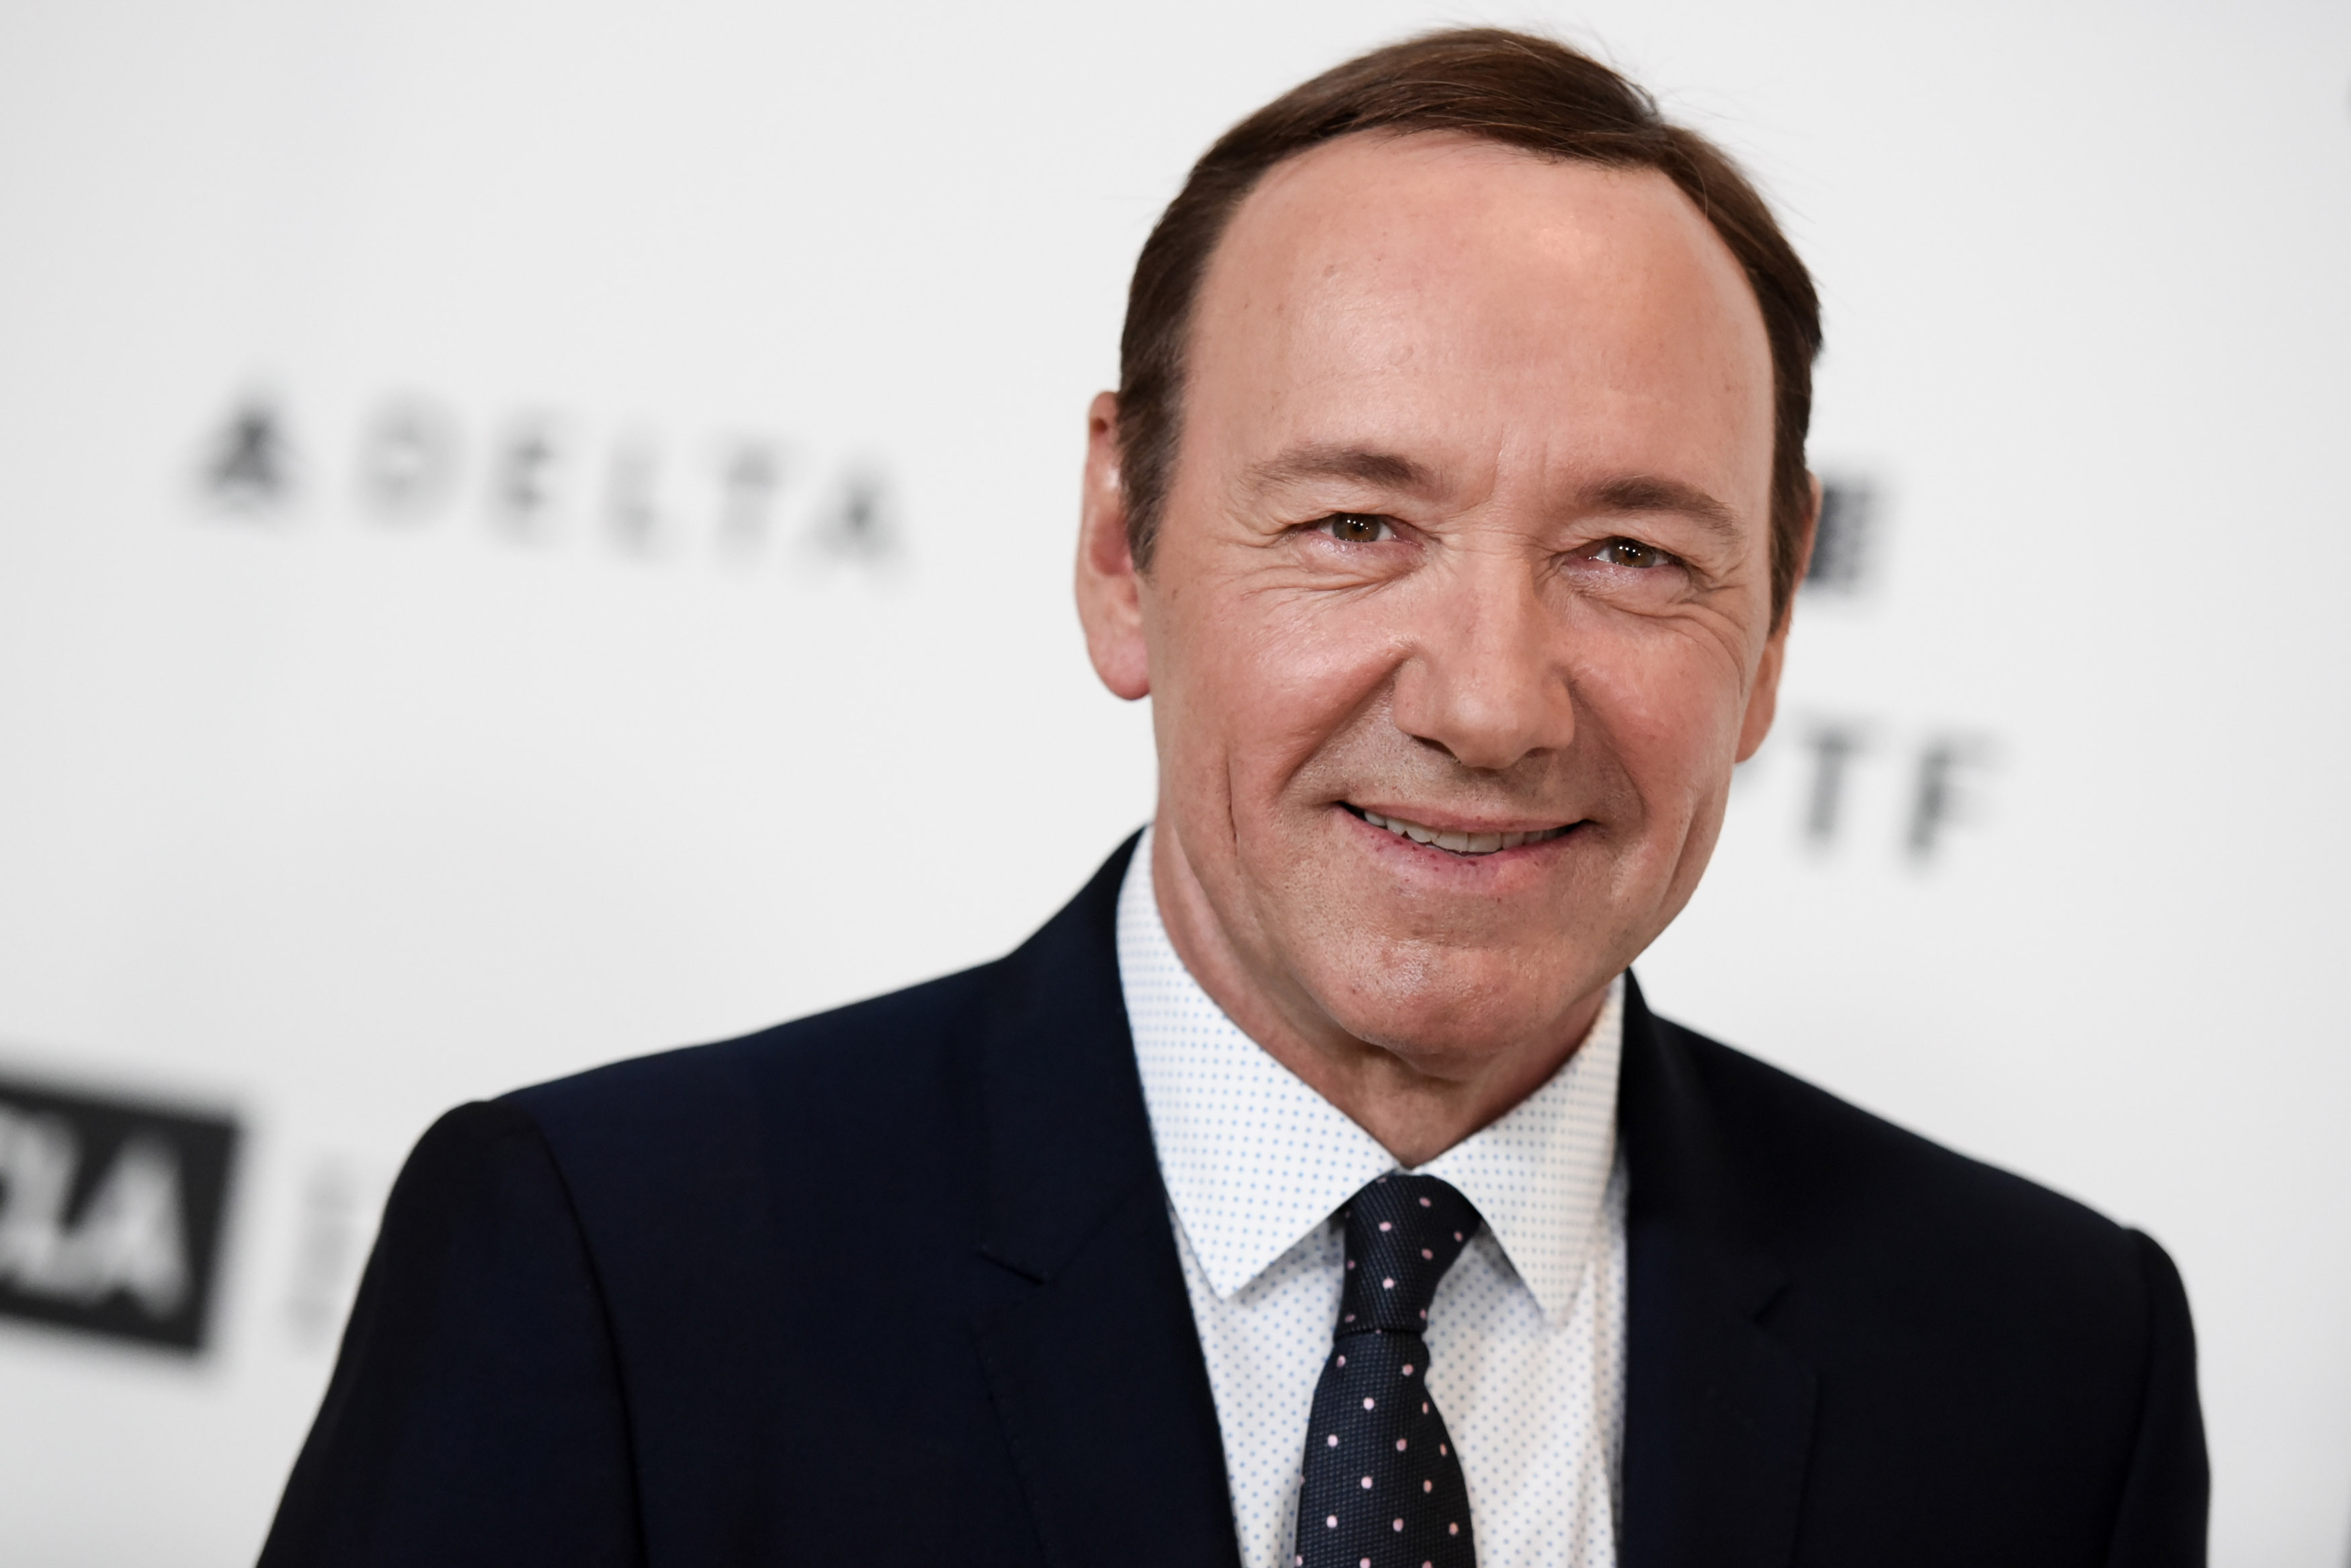 Kevin spacey wallpapers - Spacey wallpaper ...